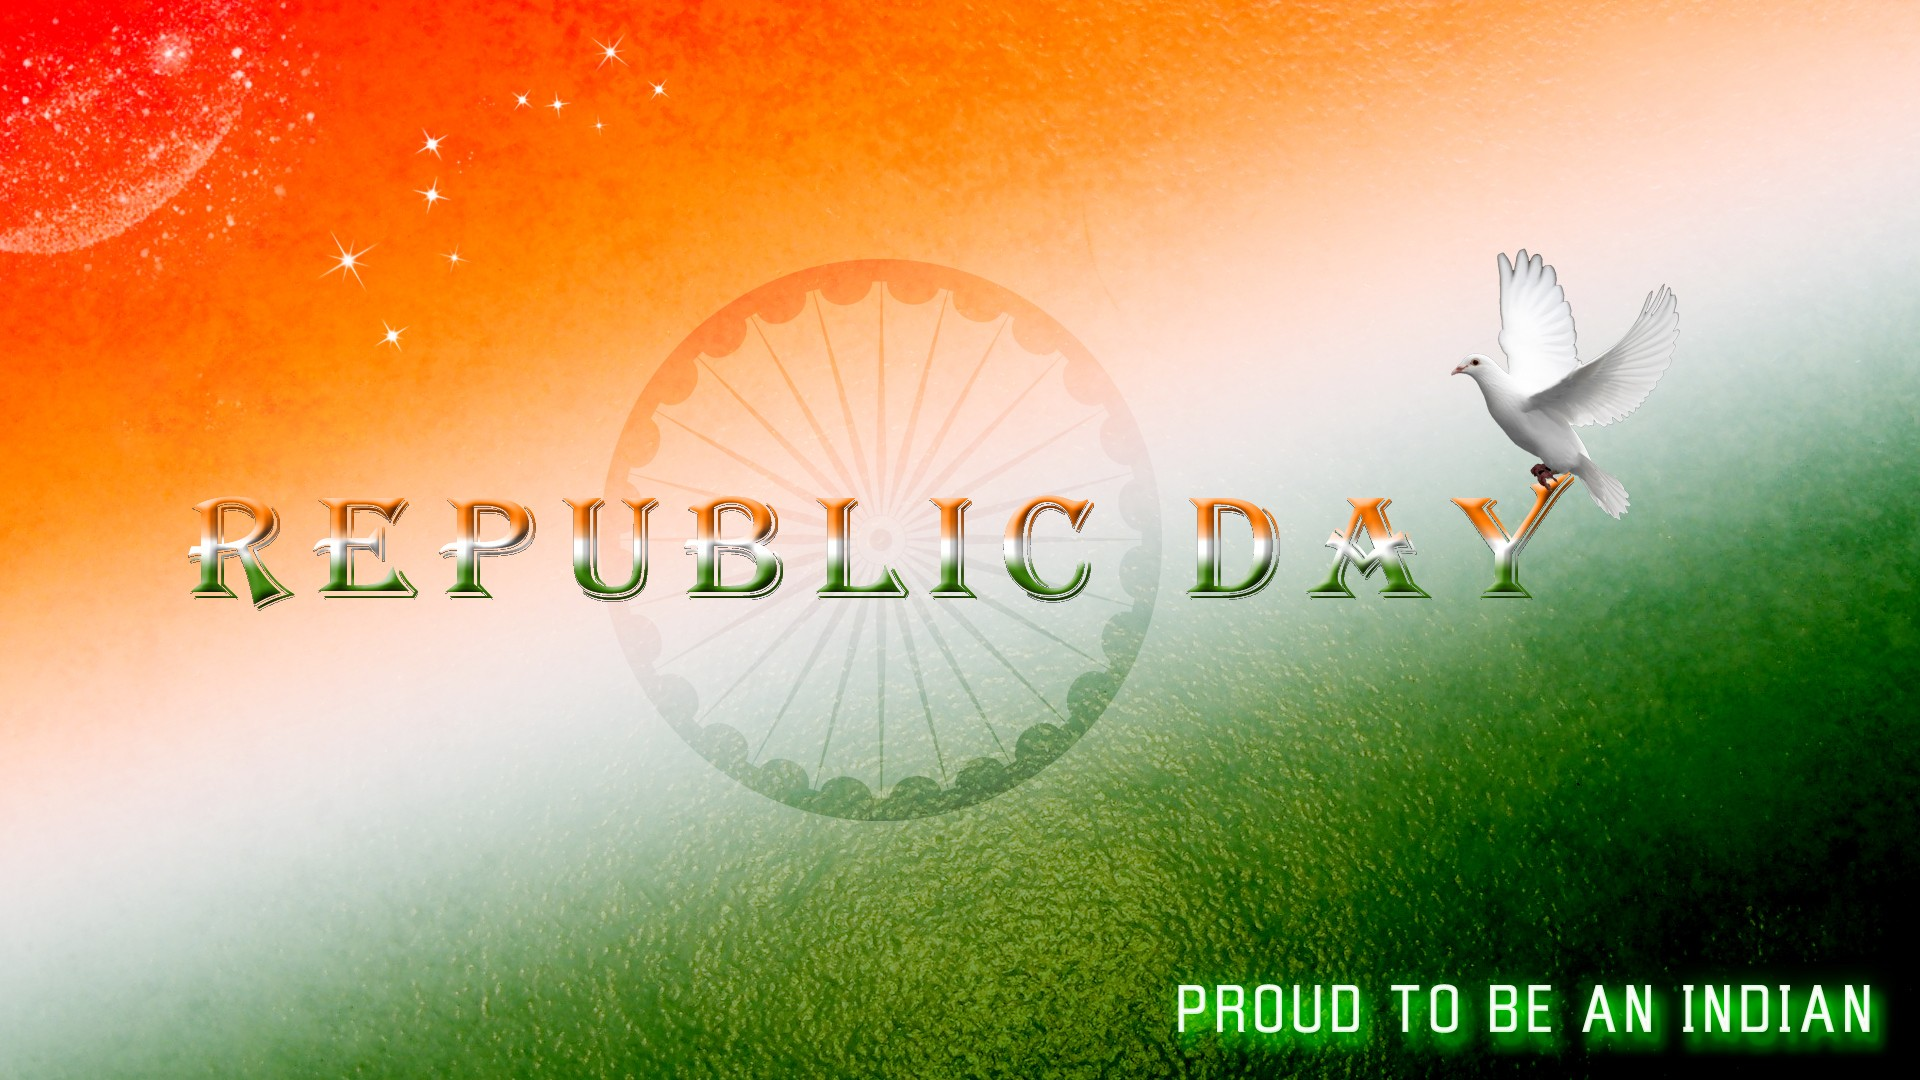 Bharat Darshan - 67th Republic Day Greetings - PROUD TO BE INDIAN